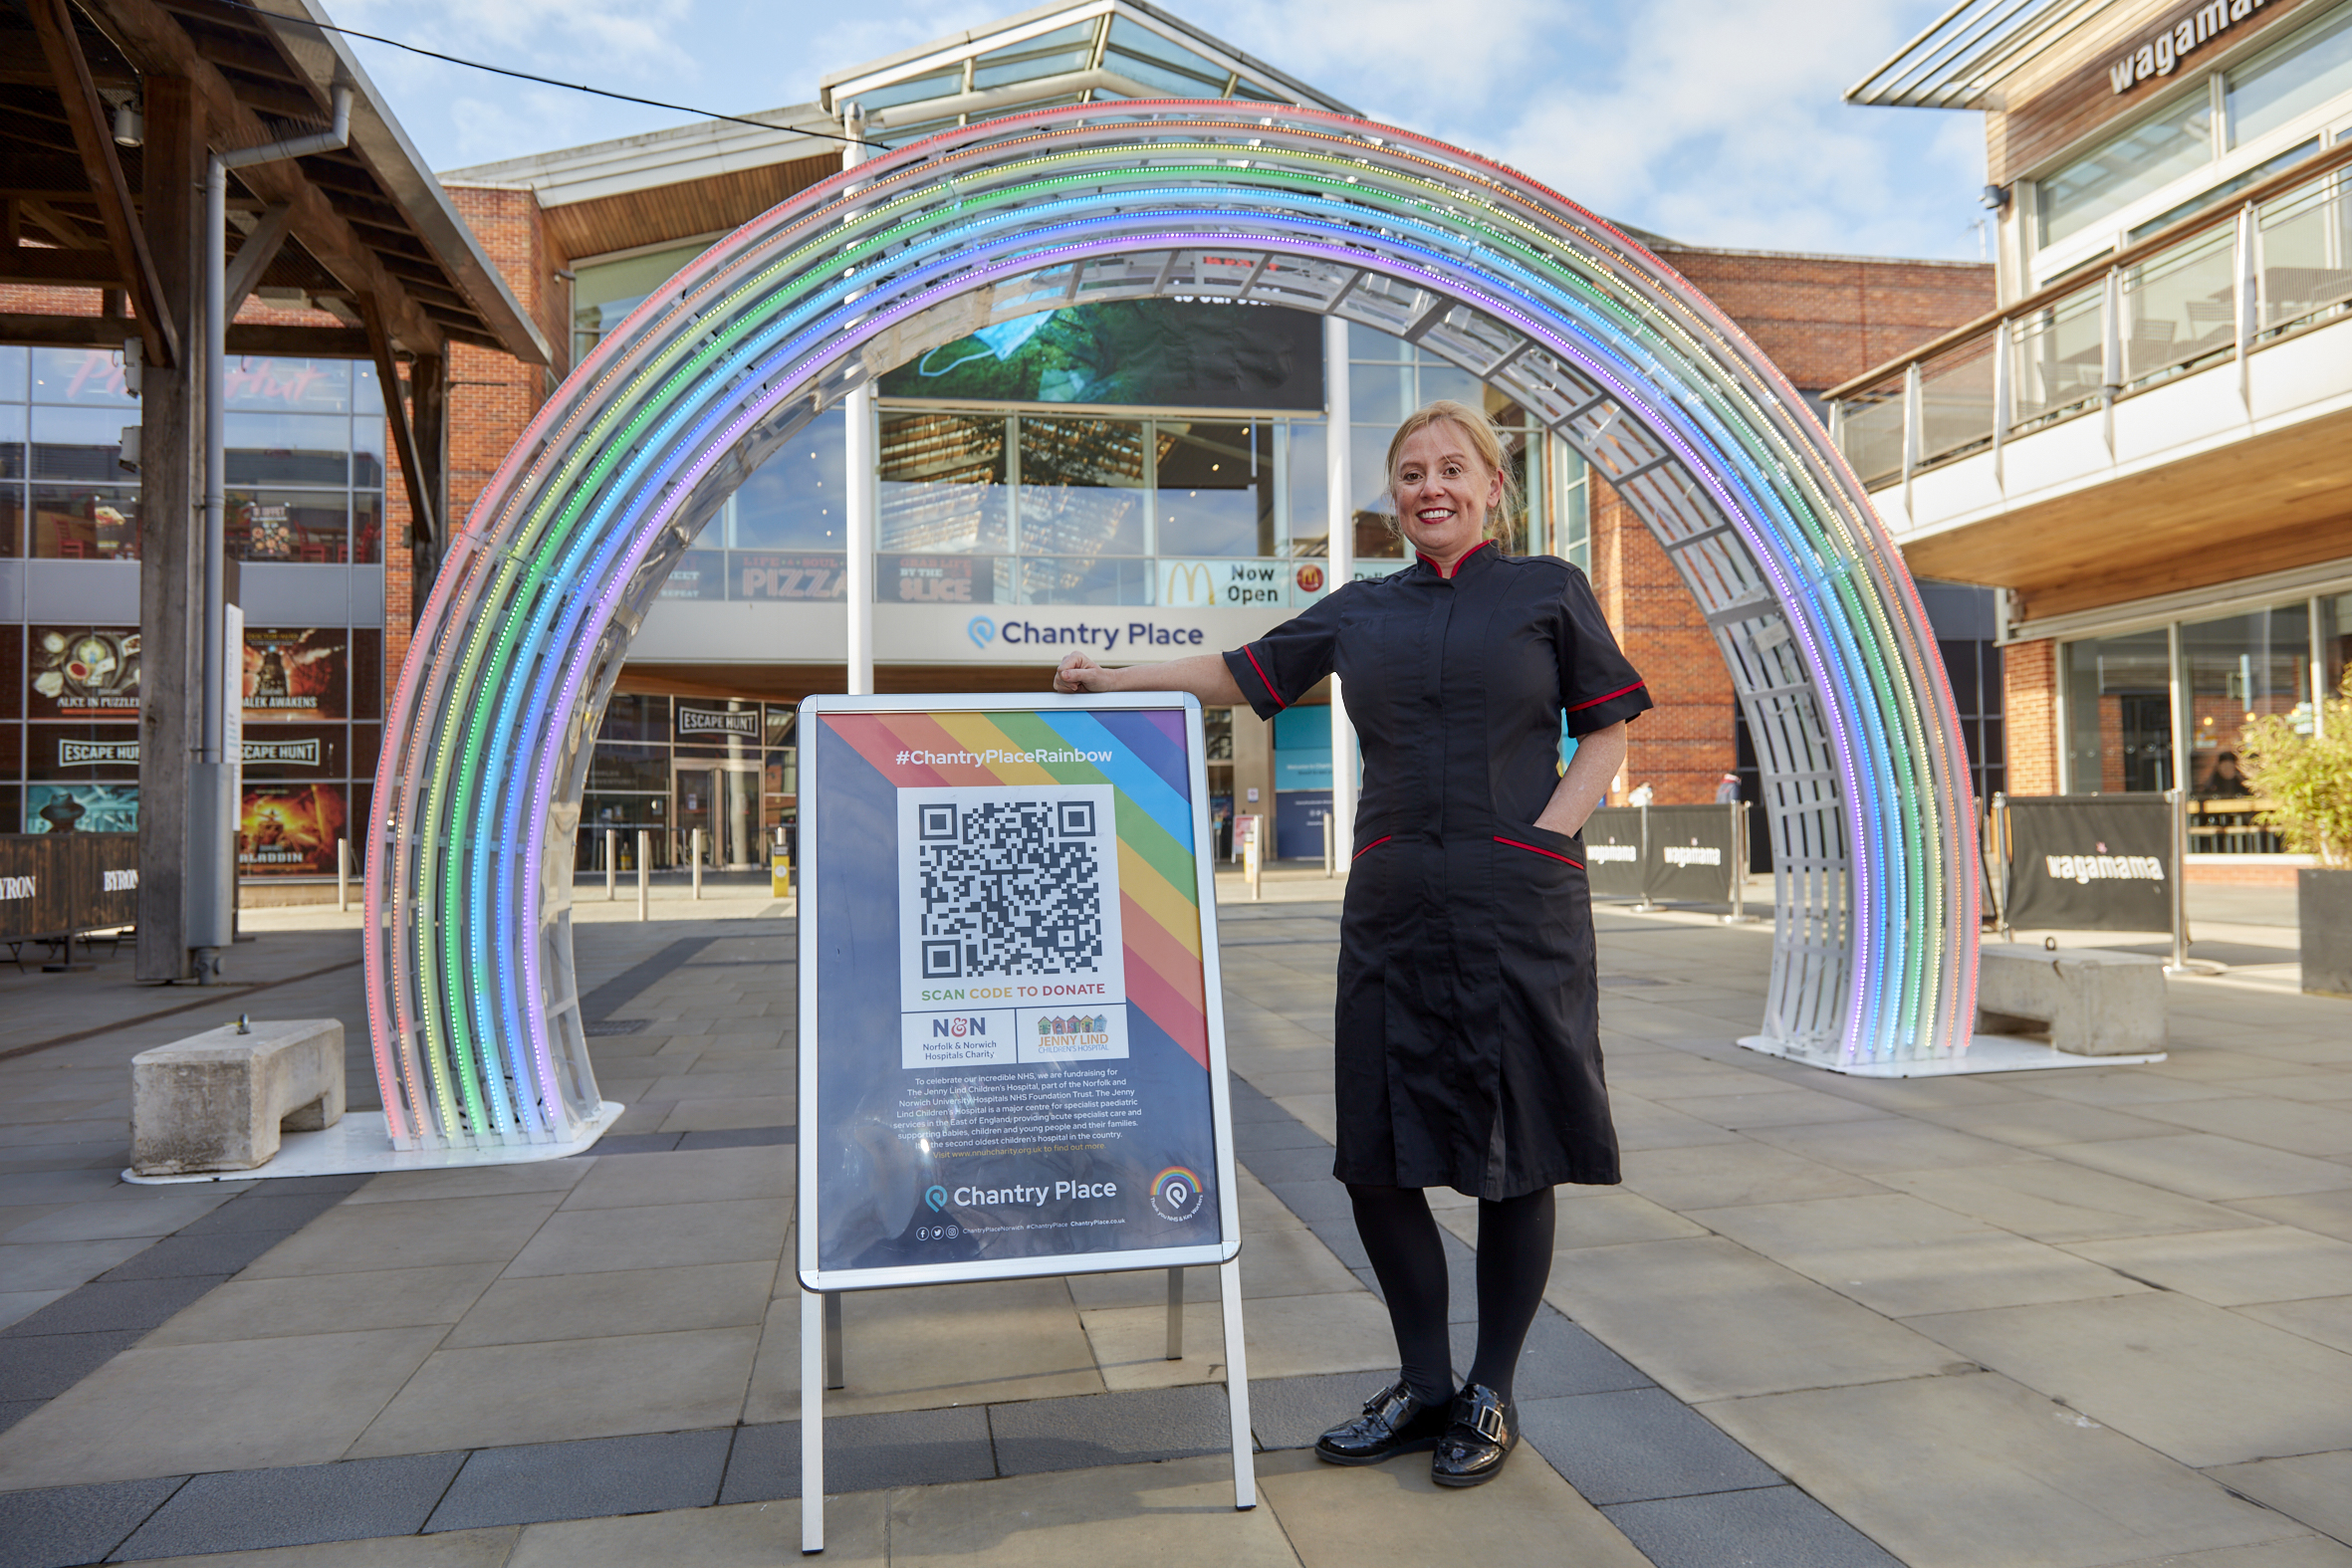 Chantry Place links arrival of giant rainbow to fundraising for the NHS